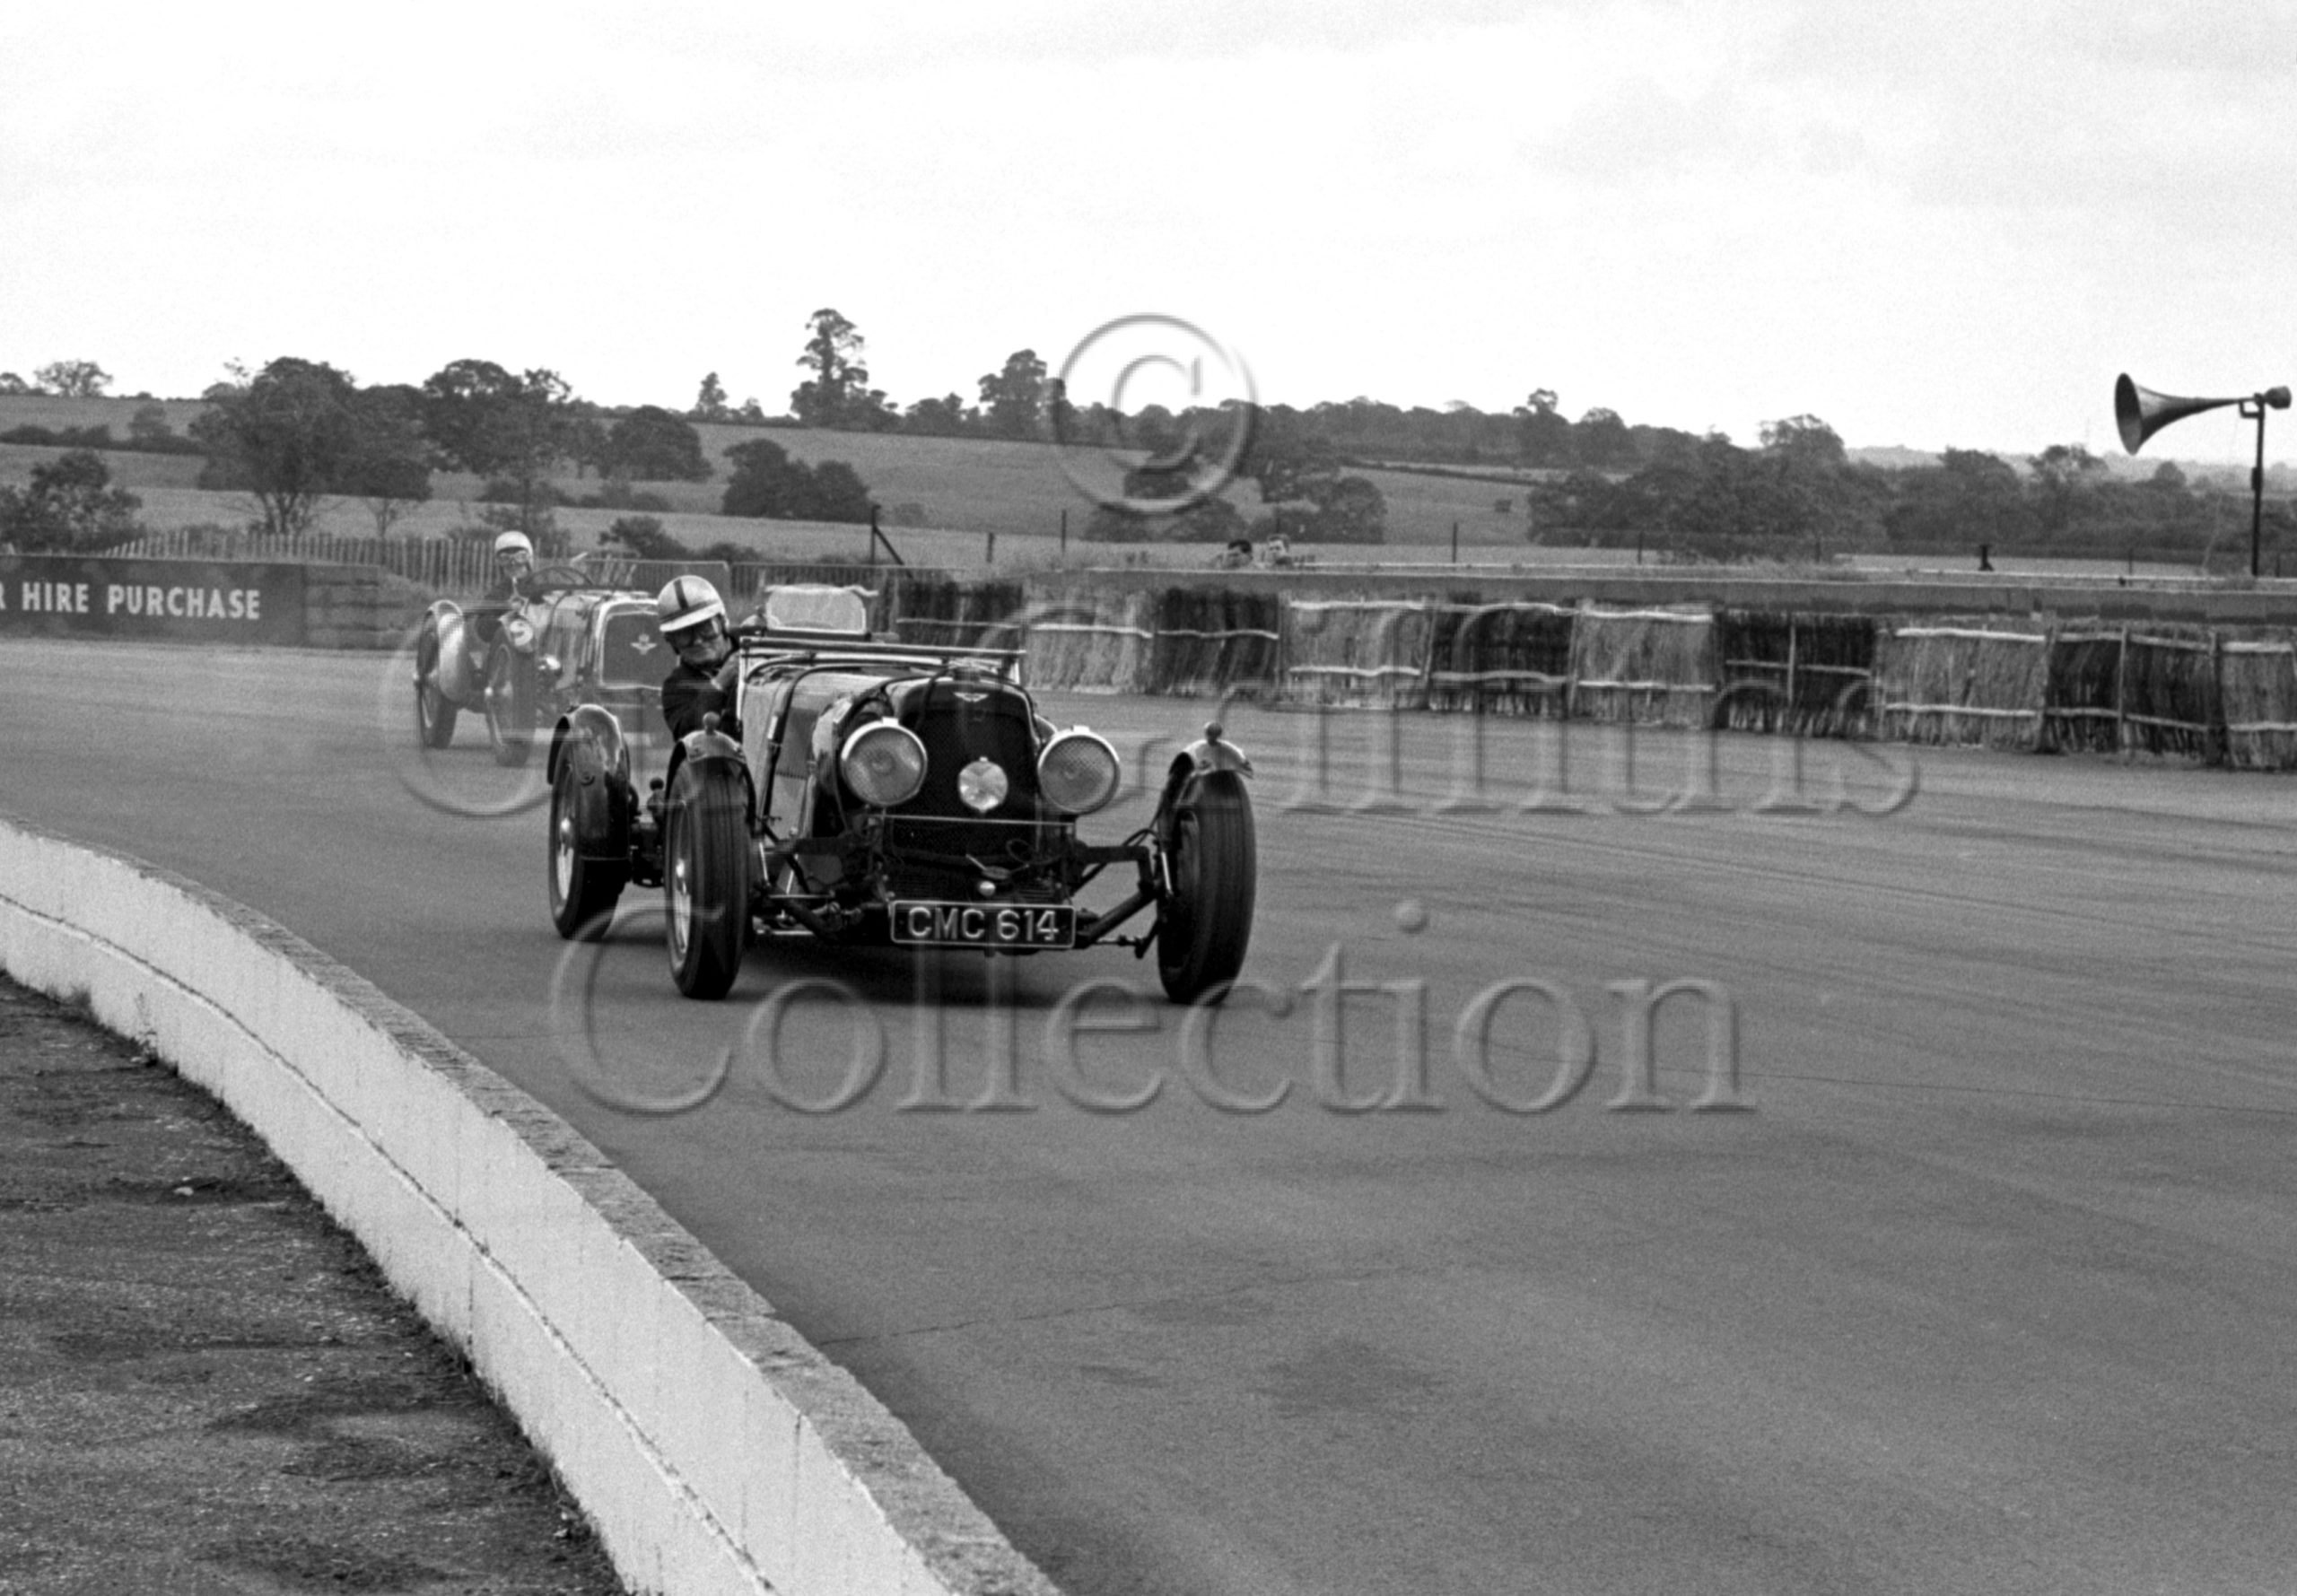 92-864–D-Edwards–Aston-Martin-CMC-614–Silverstone–24-07-1965.jpg - Guy Griffiths Collection